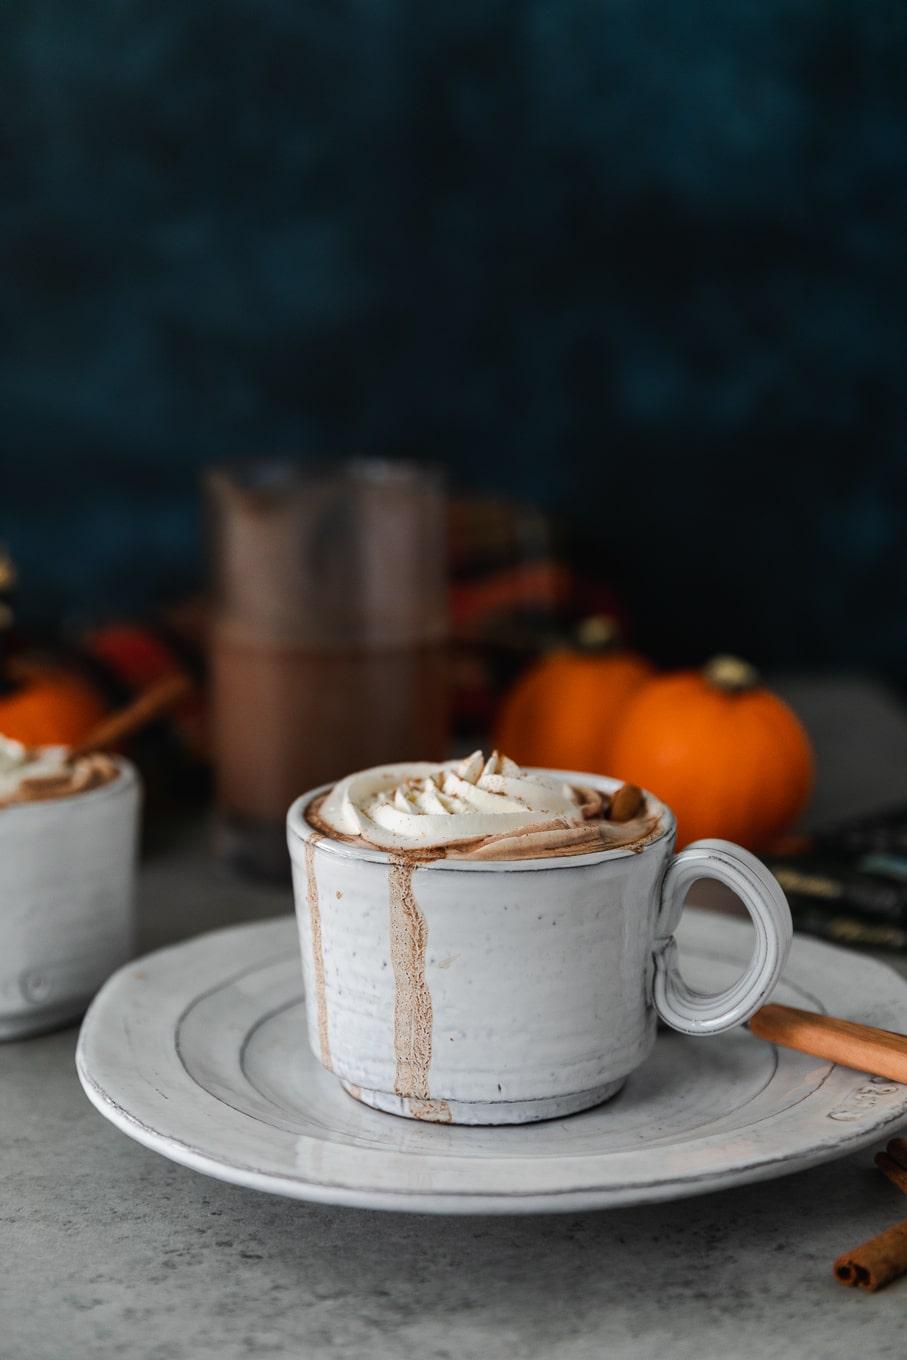 Forward facing shot of a white mug on a white plate filled with hot chocolate, topped with whipped cream and a cinnamon stick, with mini pumpkins in the background and a dark blue background